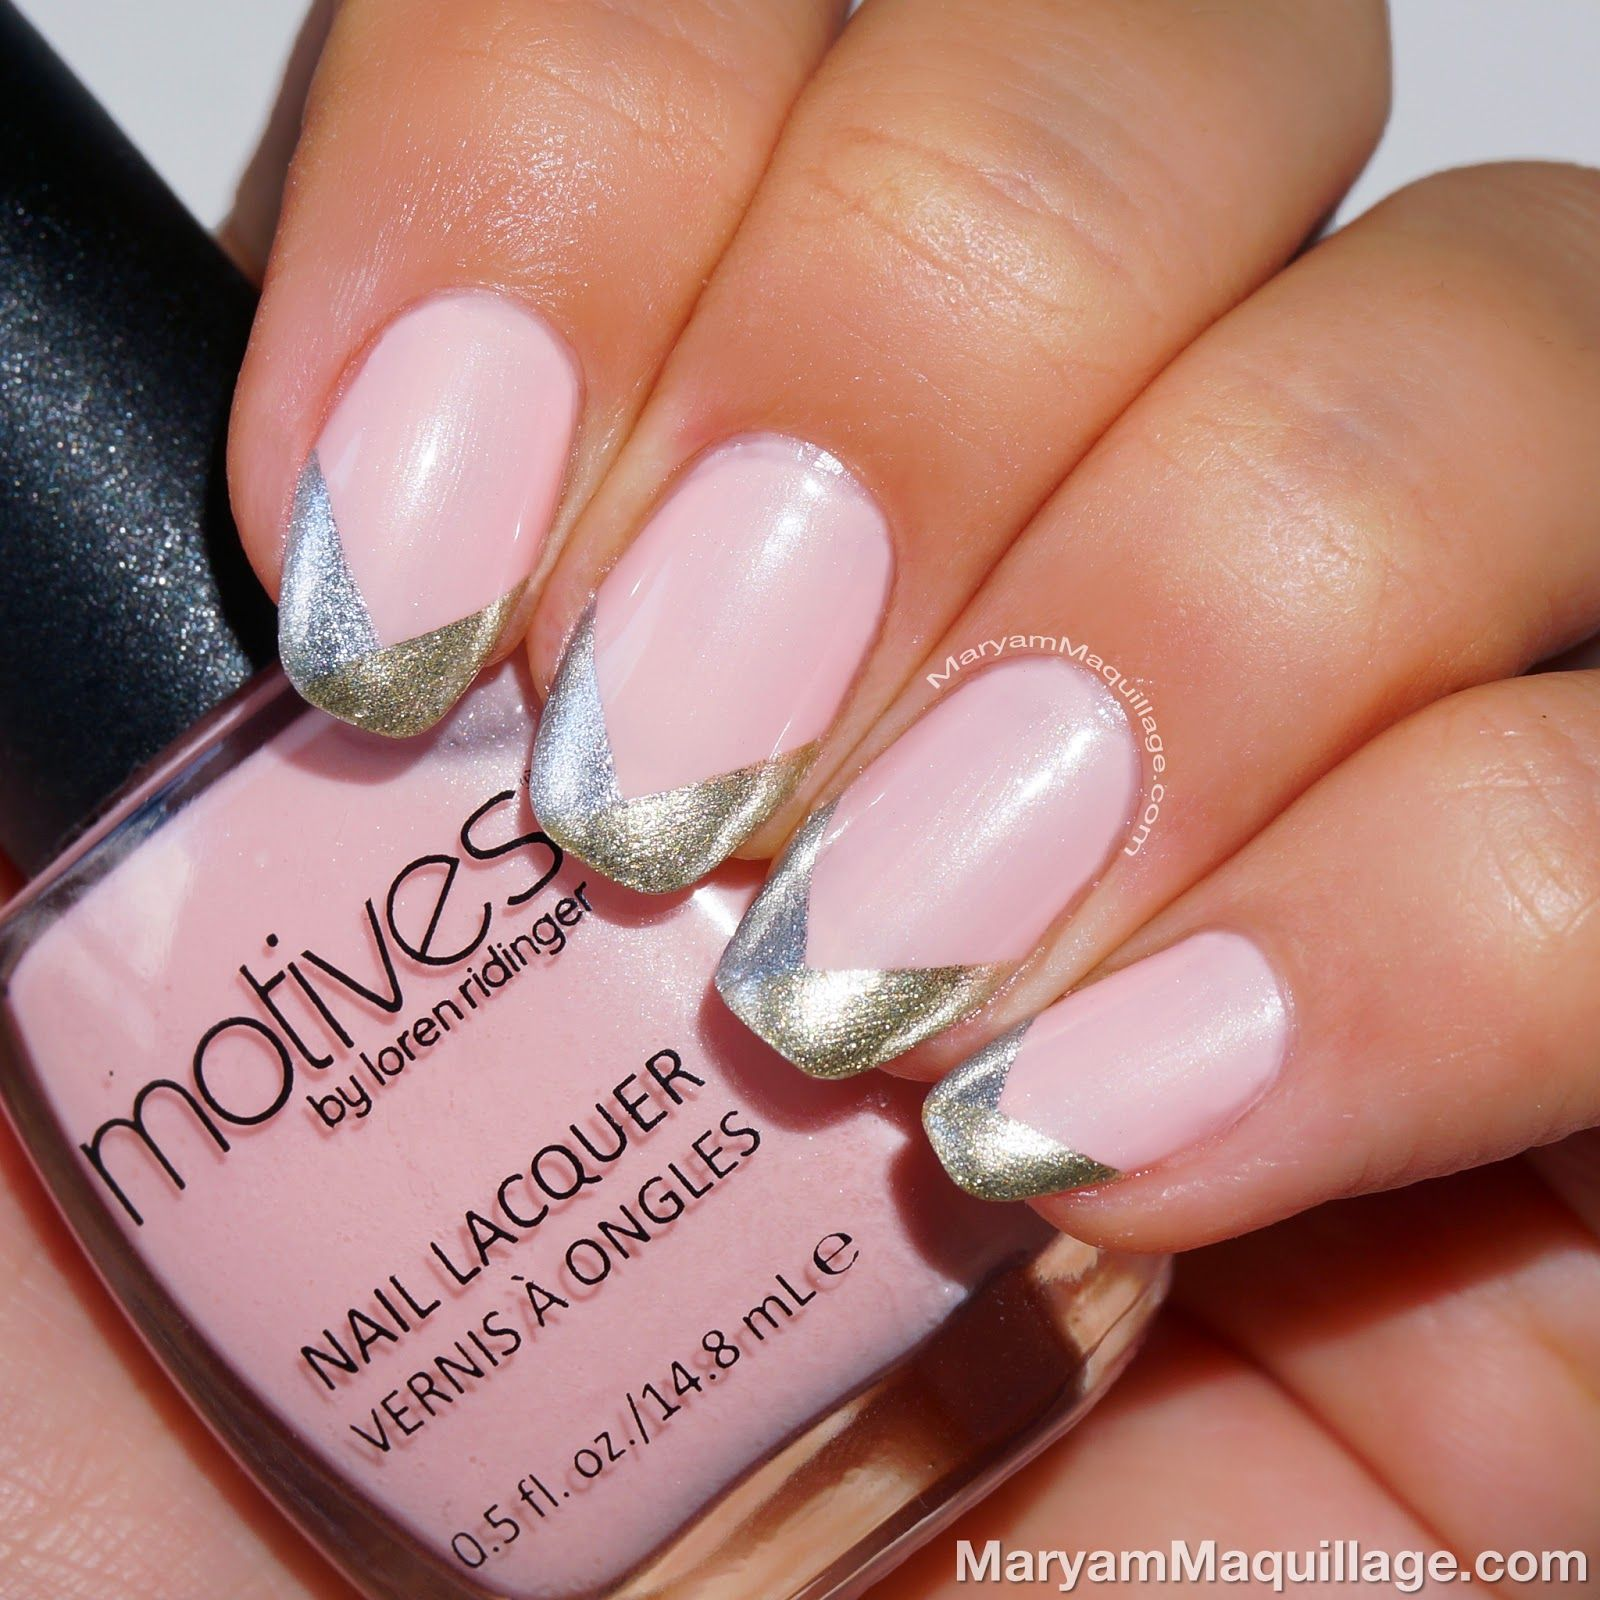 Piggieluv Freehand Stairway To Heaven Nail Art: Pin On Hair News Network : Nail Art